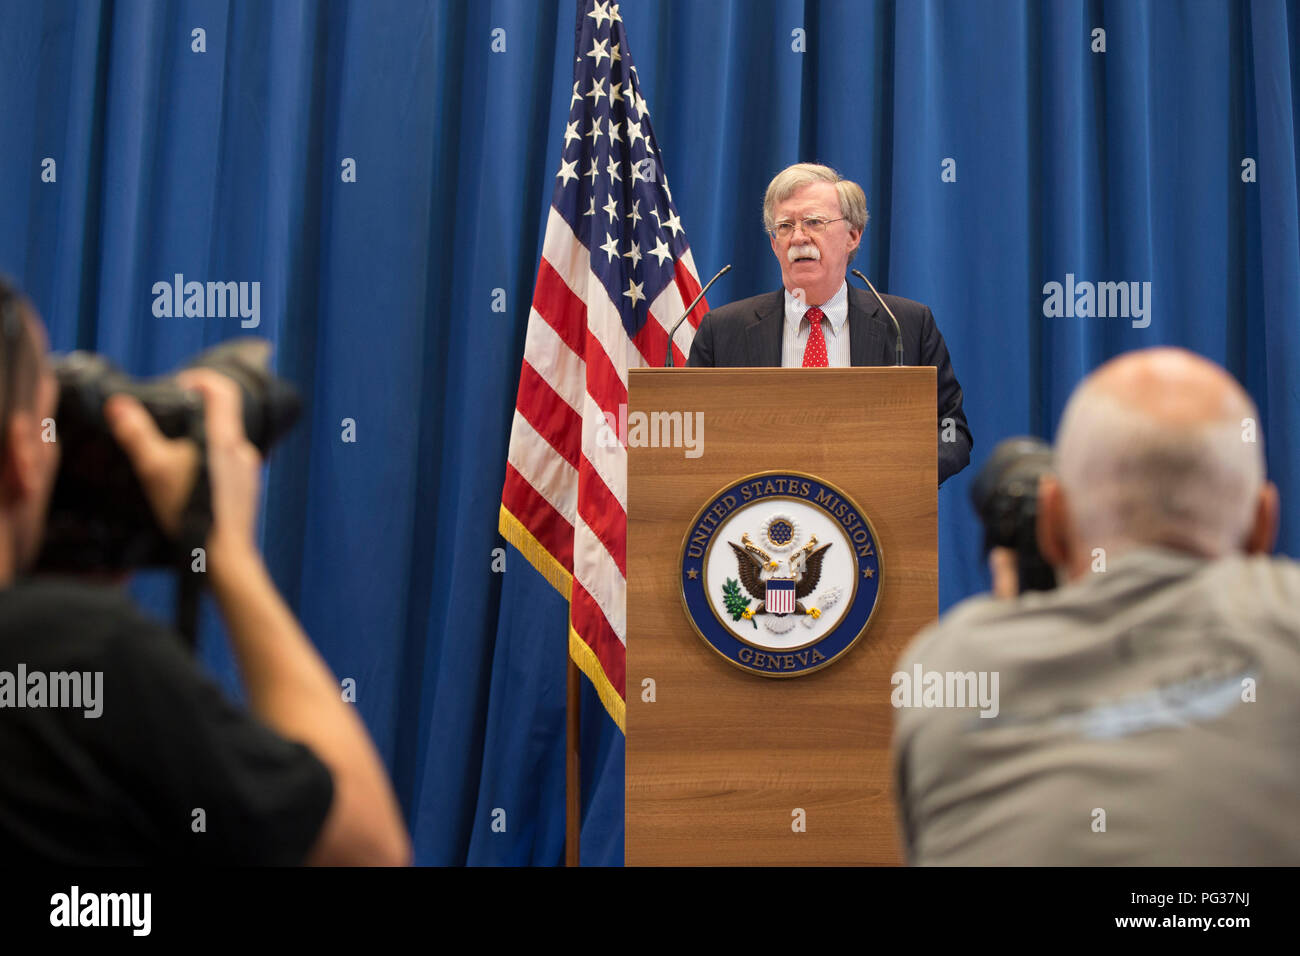 Geneva, Switzerland. 23rd Aug, 2018. U.S. National Security Advisor John R. Bolton speaks during a press conference in Geneva, Switzerland, Aug. 23, 2018. A meeting between U.S. National Security Advisor John R. Bolton and his Russian counterpart, Security Council Secretary Nikolai Patrushev, concluded Thursday afternoon here in Geneva without reaching a joint statement though both sides cited 'progress'. Credit: Xu Jinquan/Xinhua/Alamy Live News - Stock Image